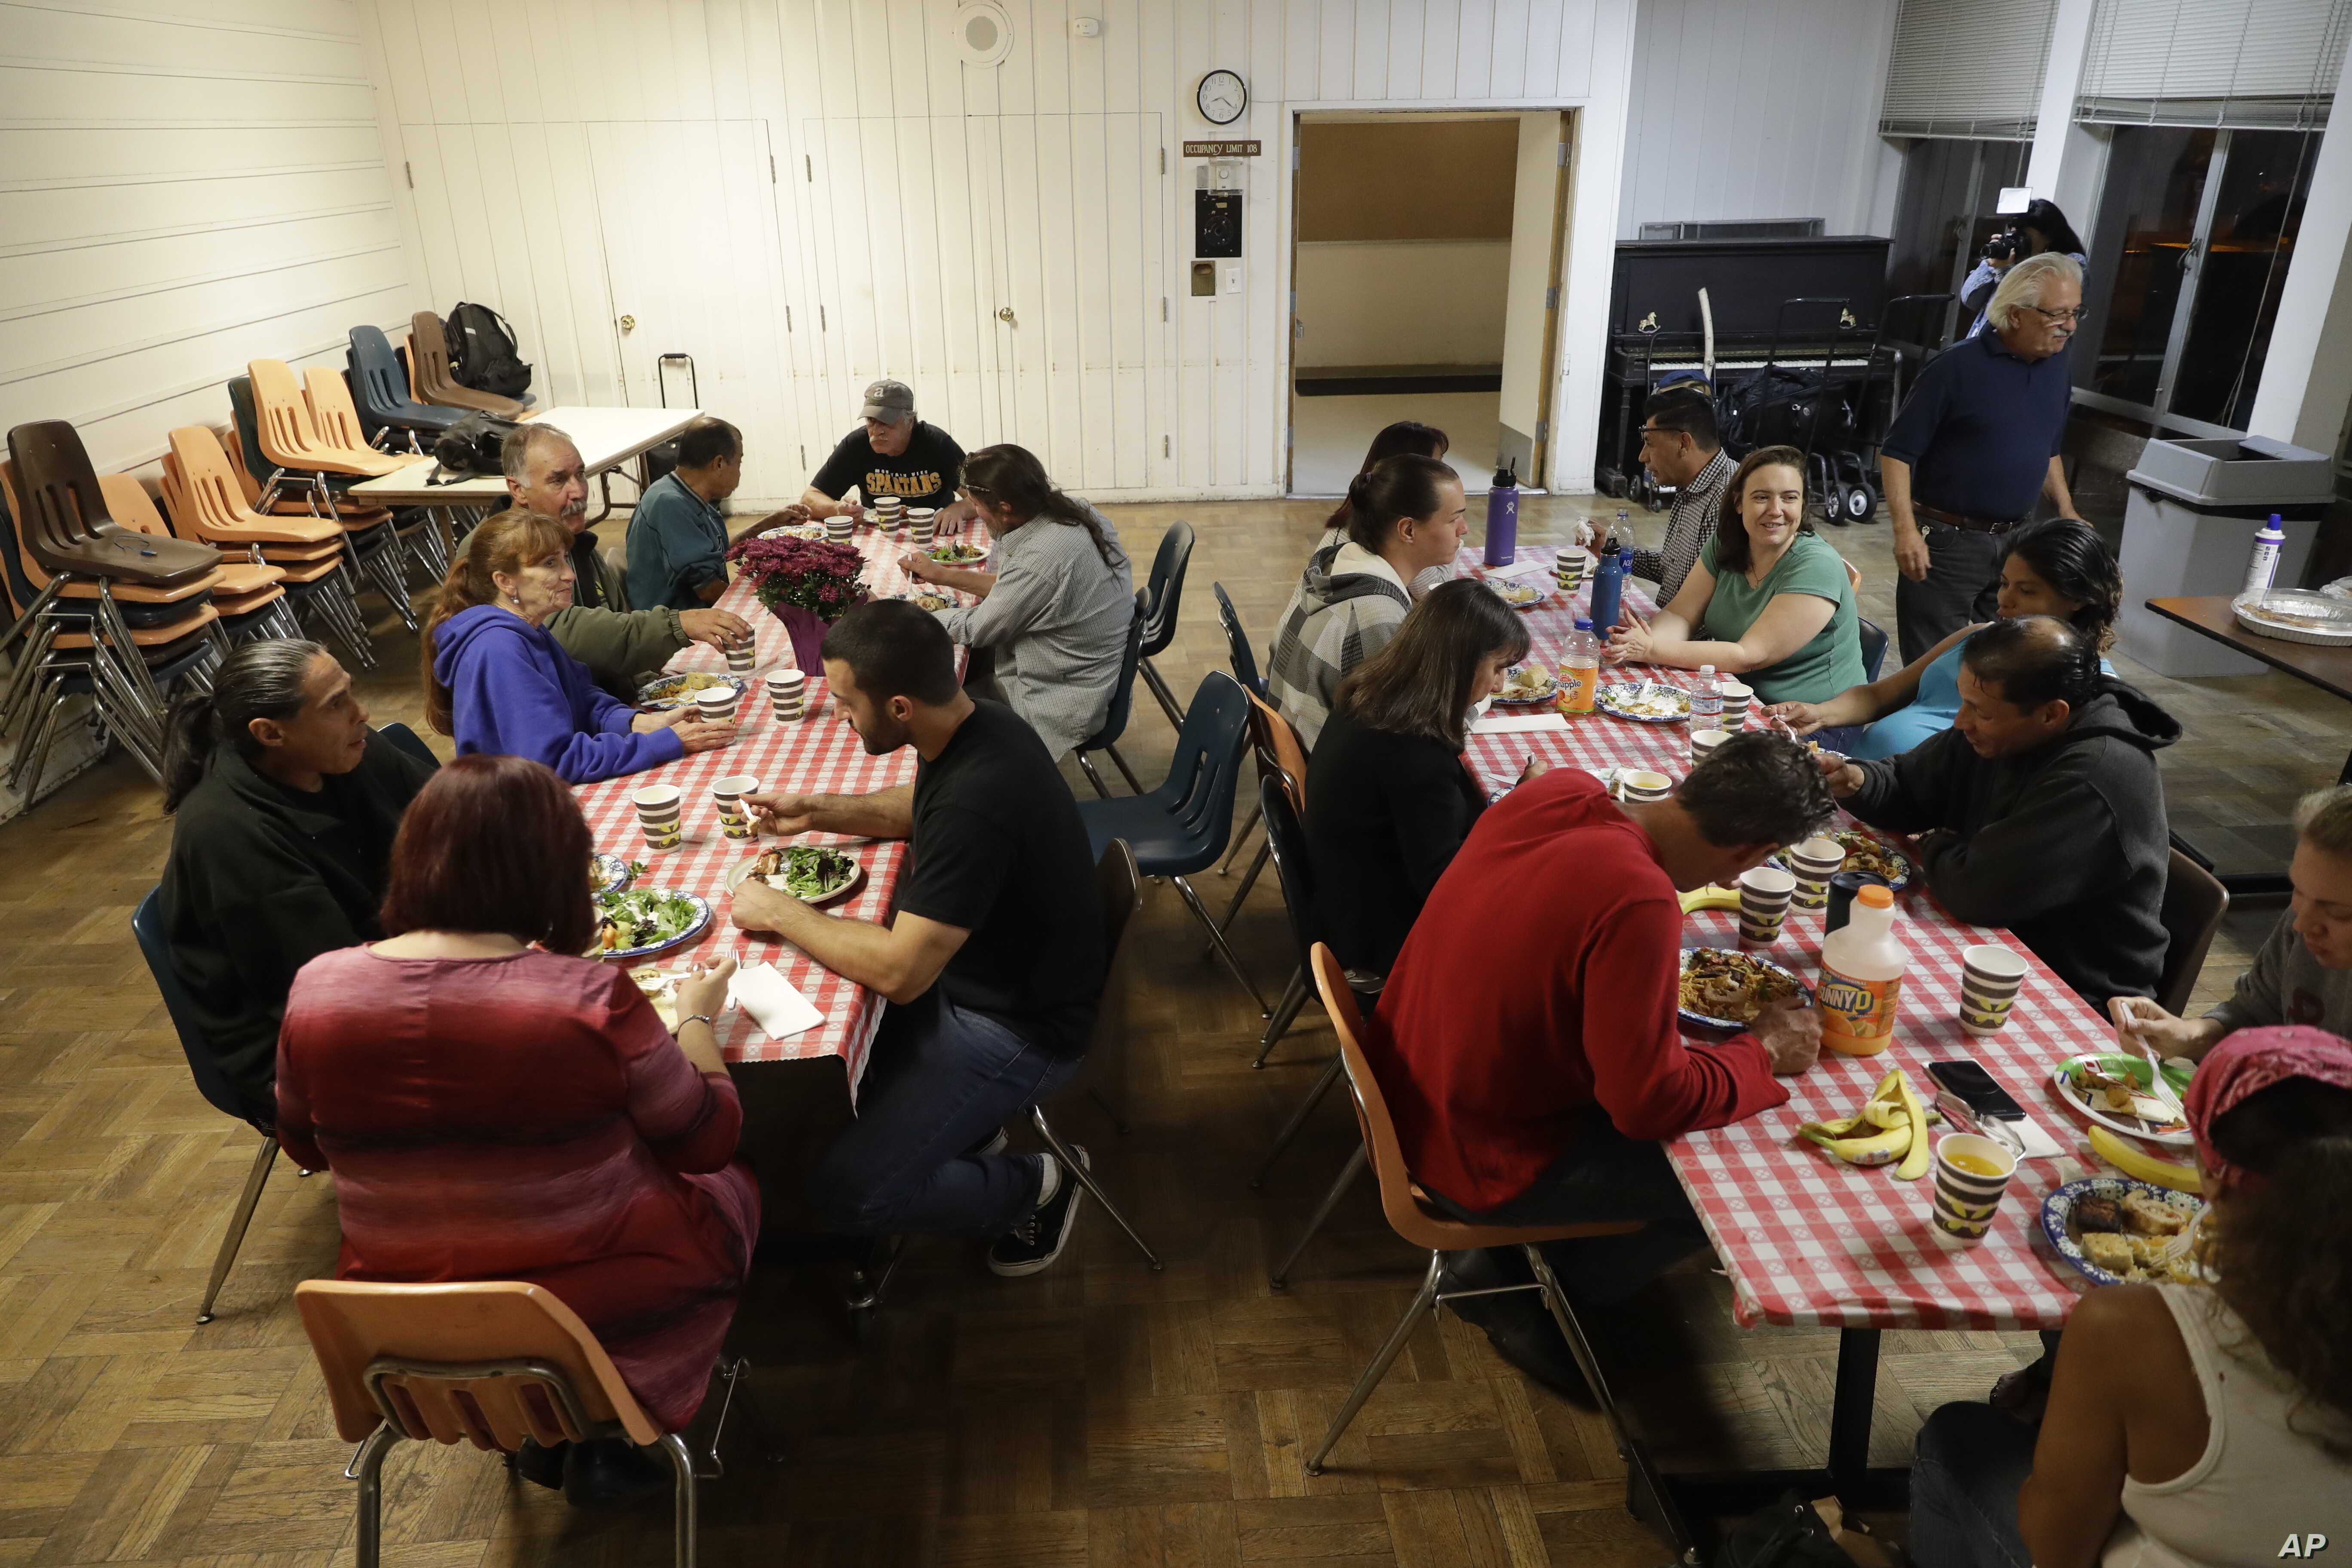 FILE - A group of homeless people, including Ellen Tara James-Penney (wearing blue) left, a lecturer at San Jose State University, receive a meal at Grace Baptist Church in San Jose, California, Oct. 10, 2017.